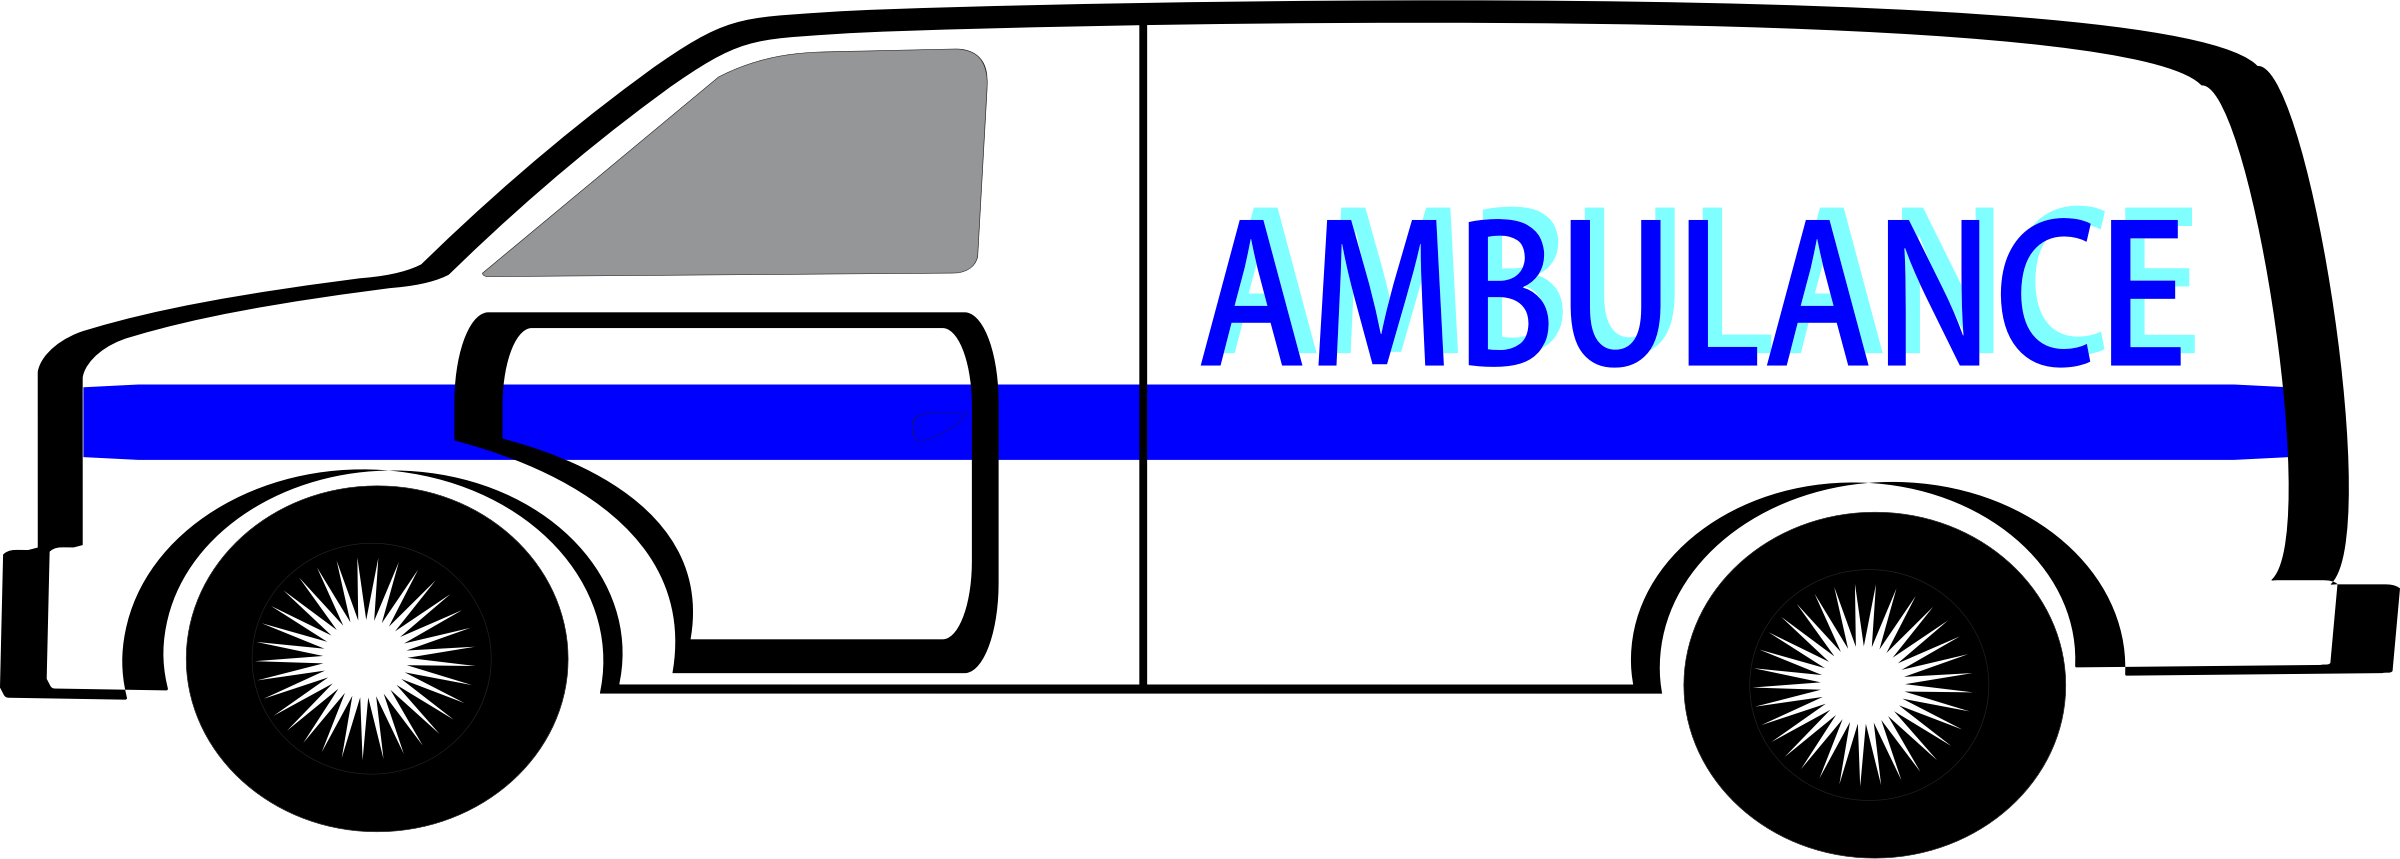 Ambulance car clipart clip art freeuse download Clipart - Ambulance clip art freeuse download